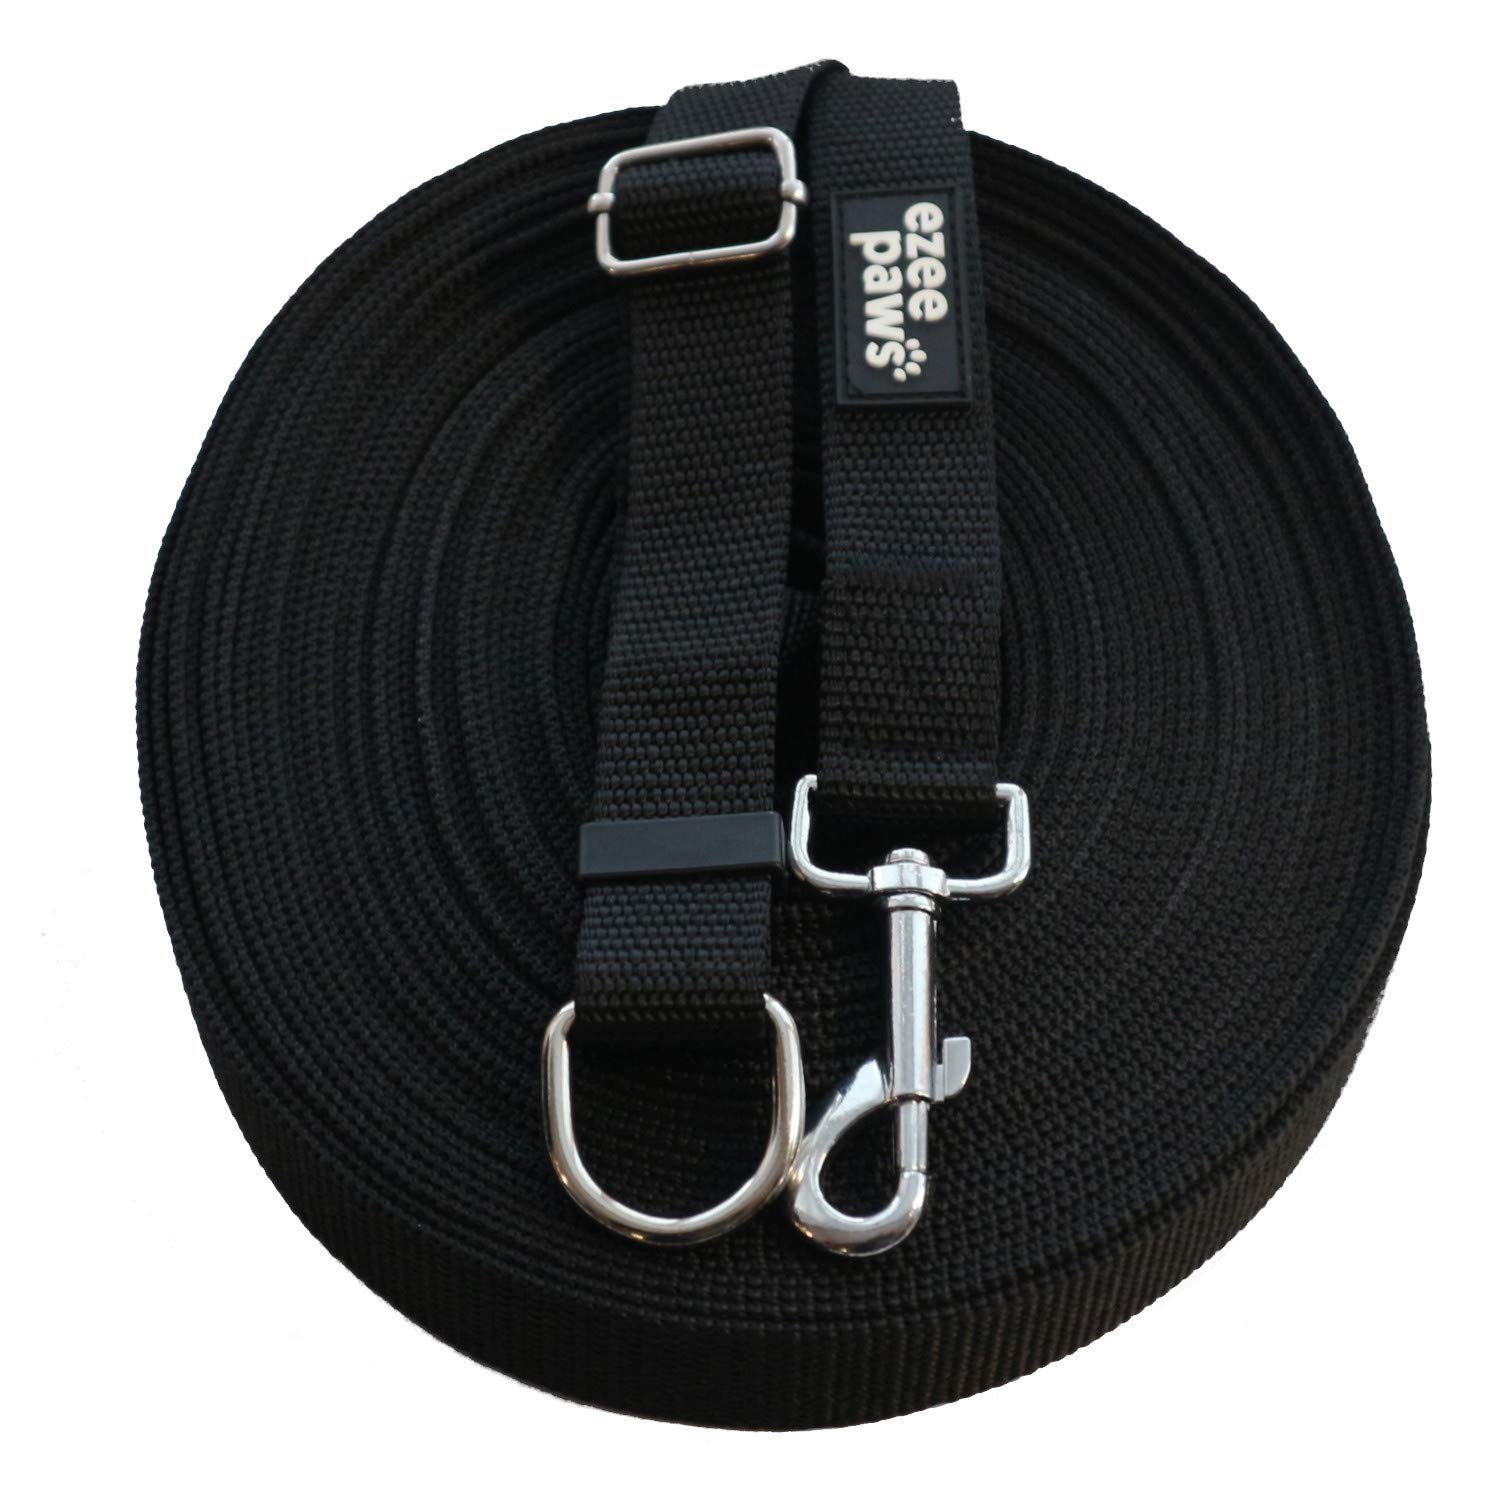 Ezee Paws Dog Training Lead Leash 15M /50ft Long Line with Recall Training Guide